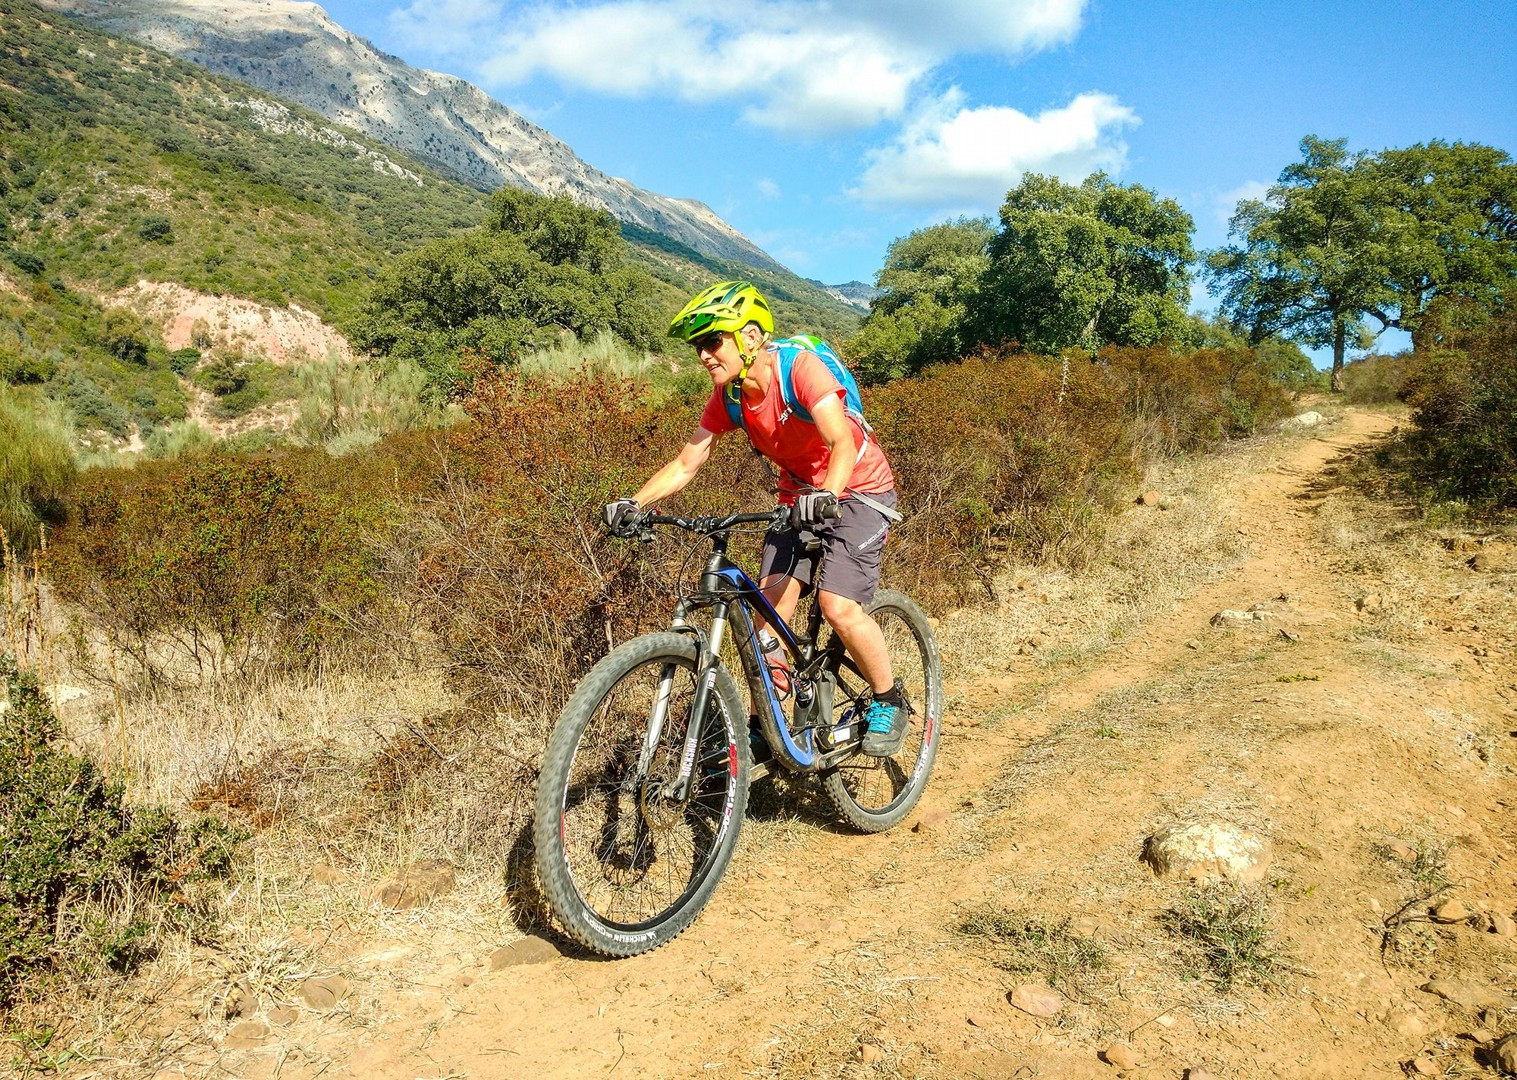 bike-holidays-in-spain-trans-andaluz-guided-mountain-biking-tour.jpg - Spain - Trans Andaluz - Guided Mountain Bike Holiday - Mountain Biking